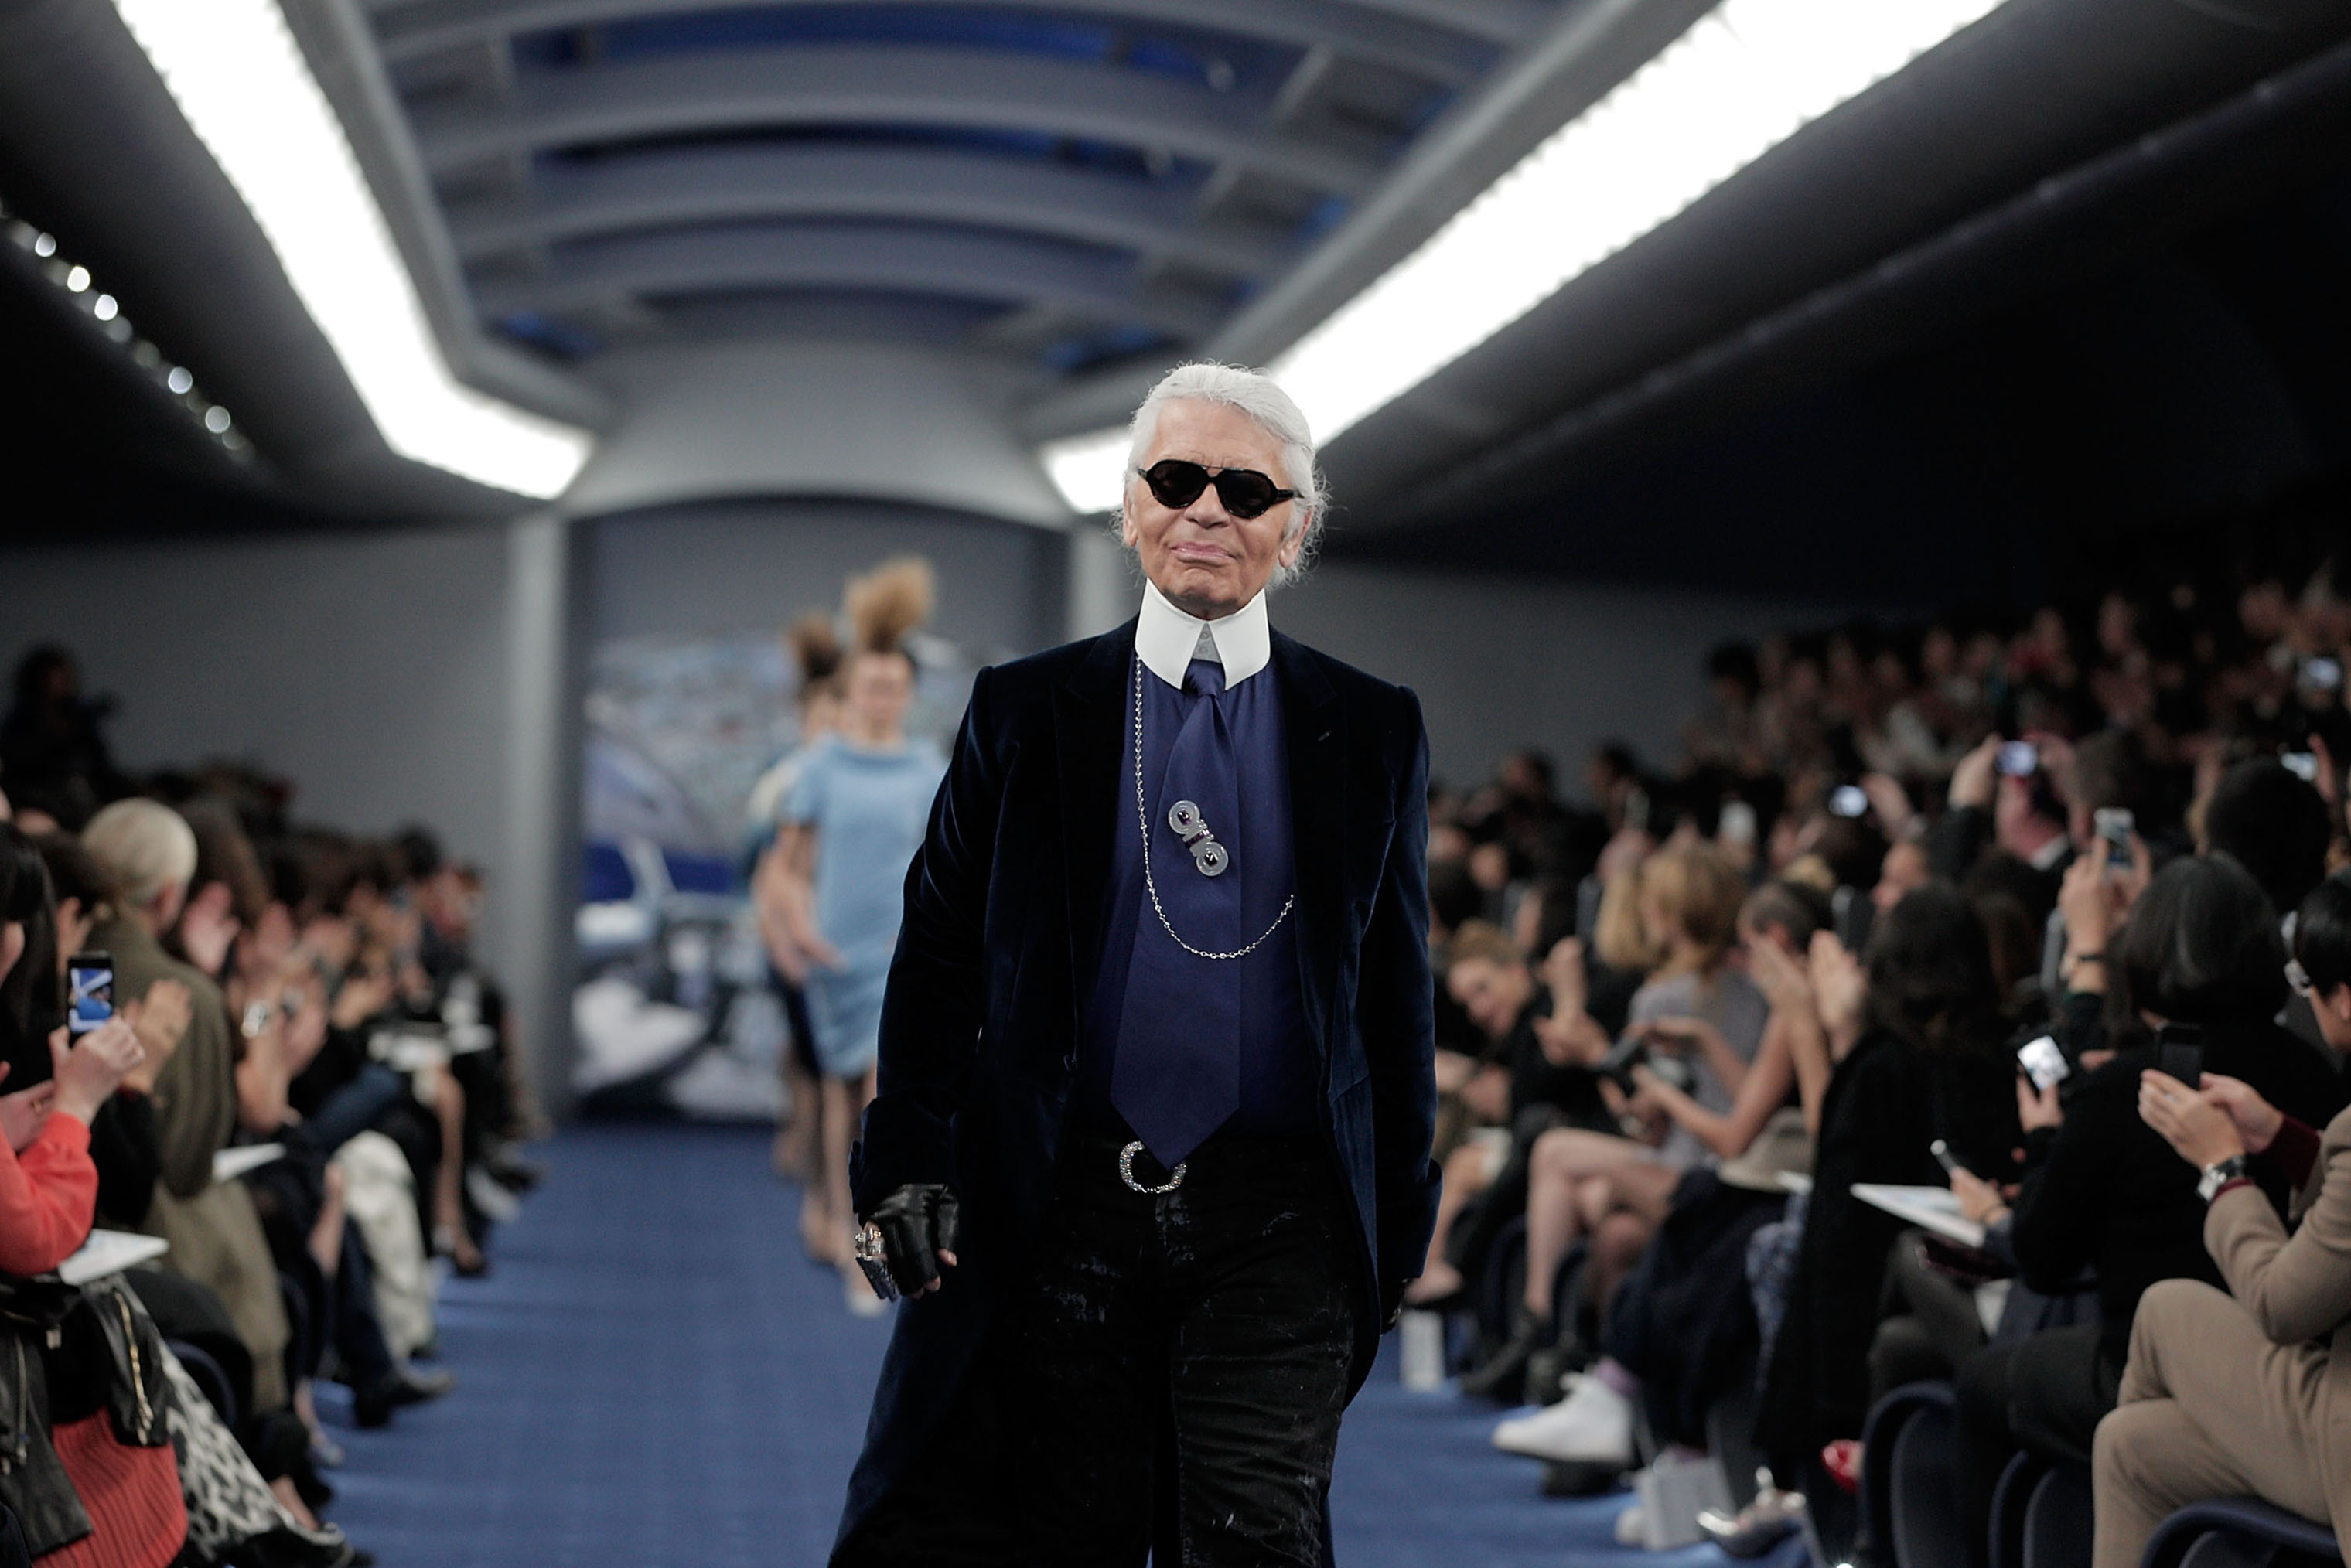 Designer Karl Lagerfeld walks on the runway during the Chanel 2012 Spring/Summer Haute Couture Collection Show at Shinjuku Gyoen Park on March 22, 2012 in Tokyo, Japan.